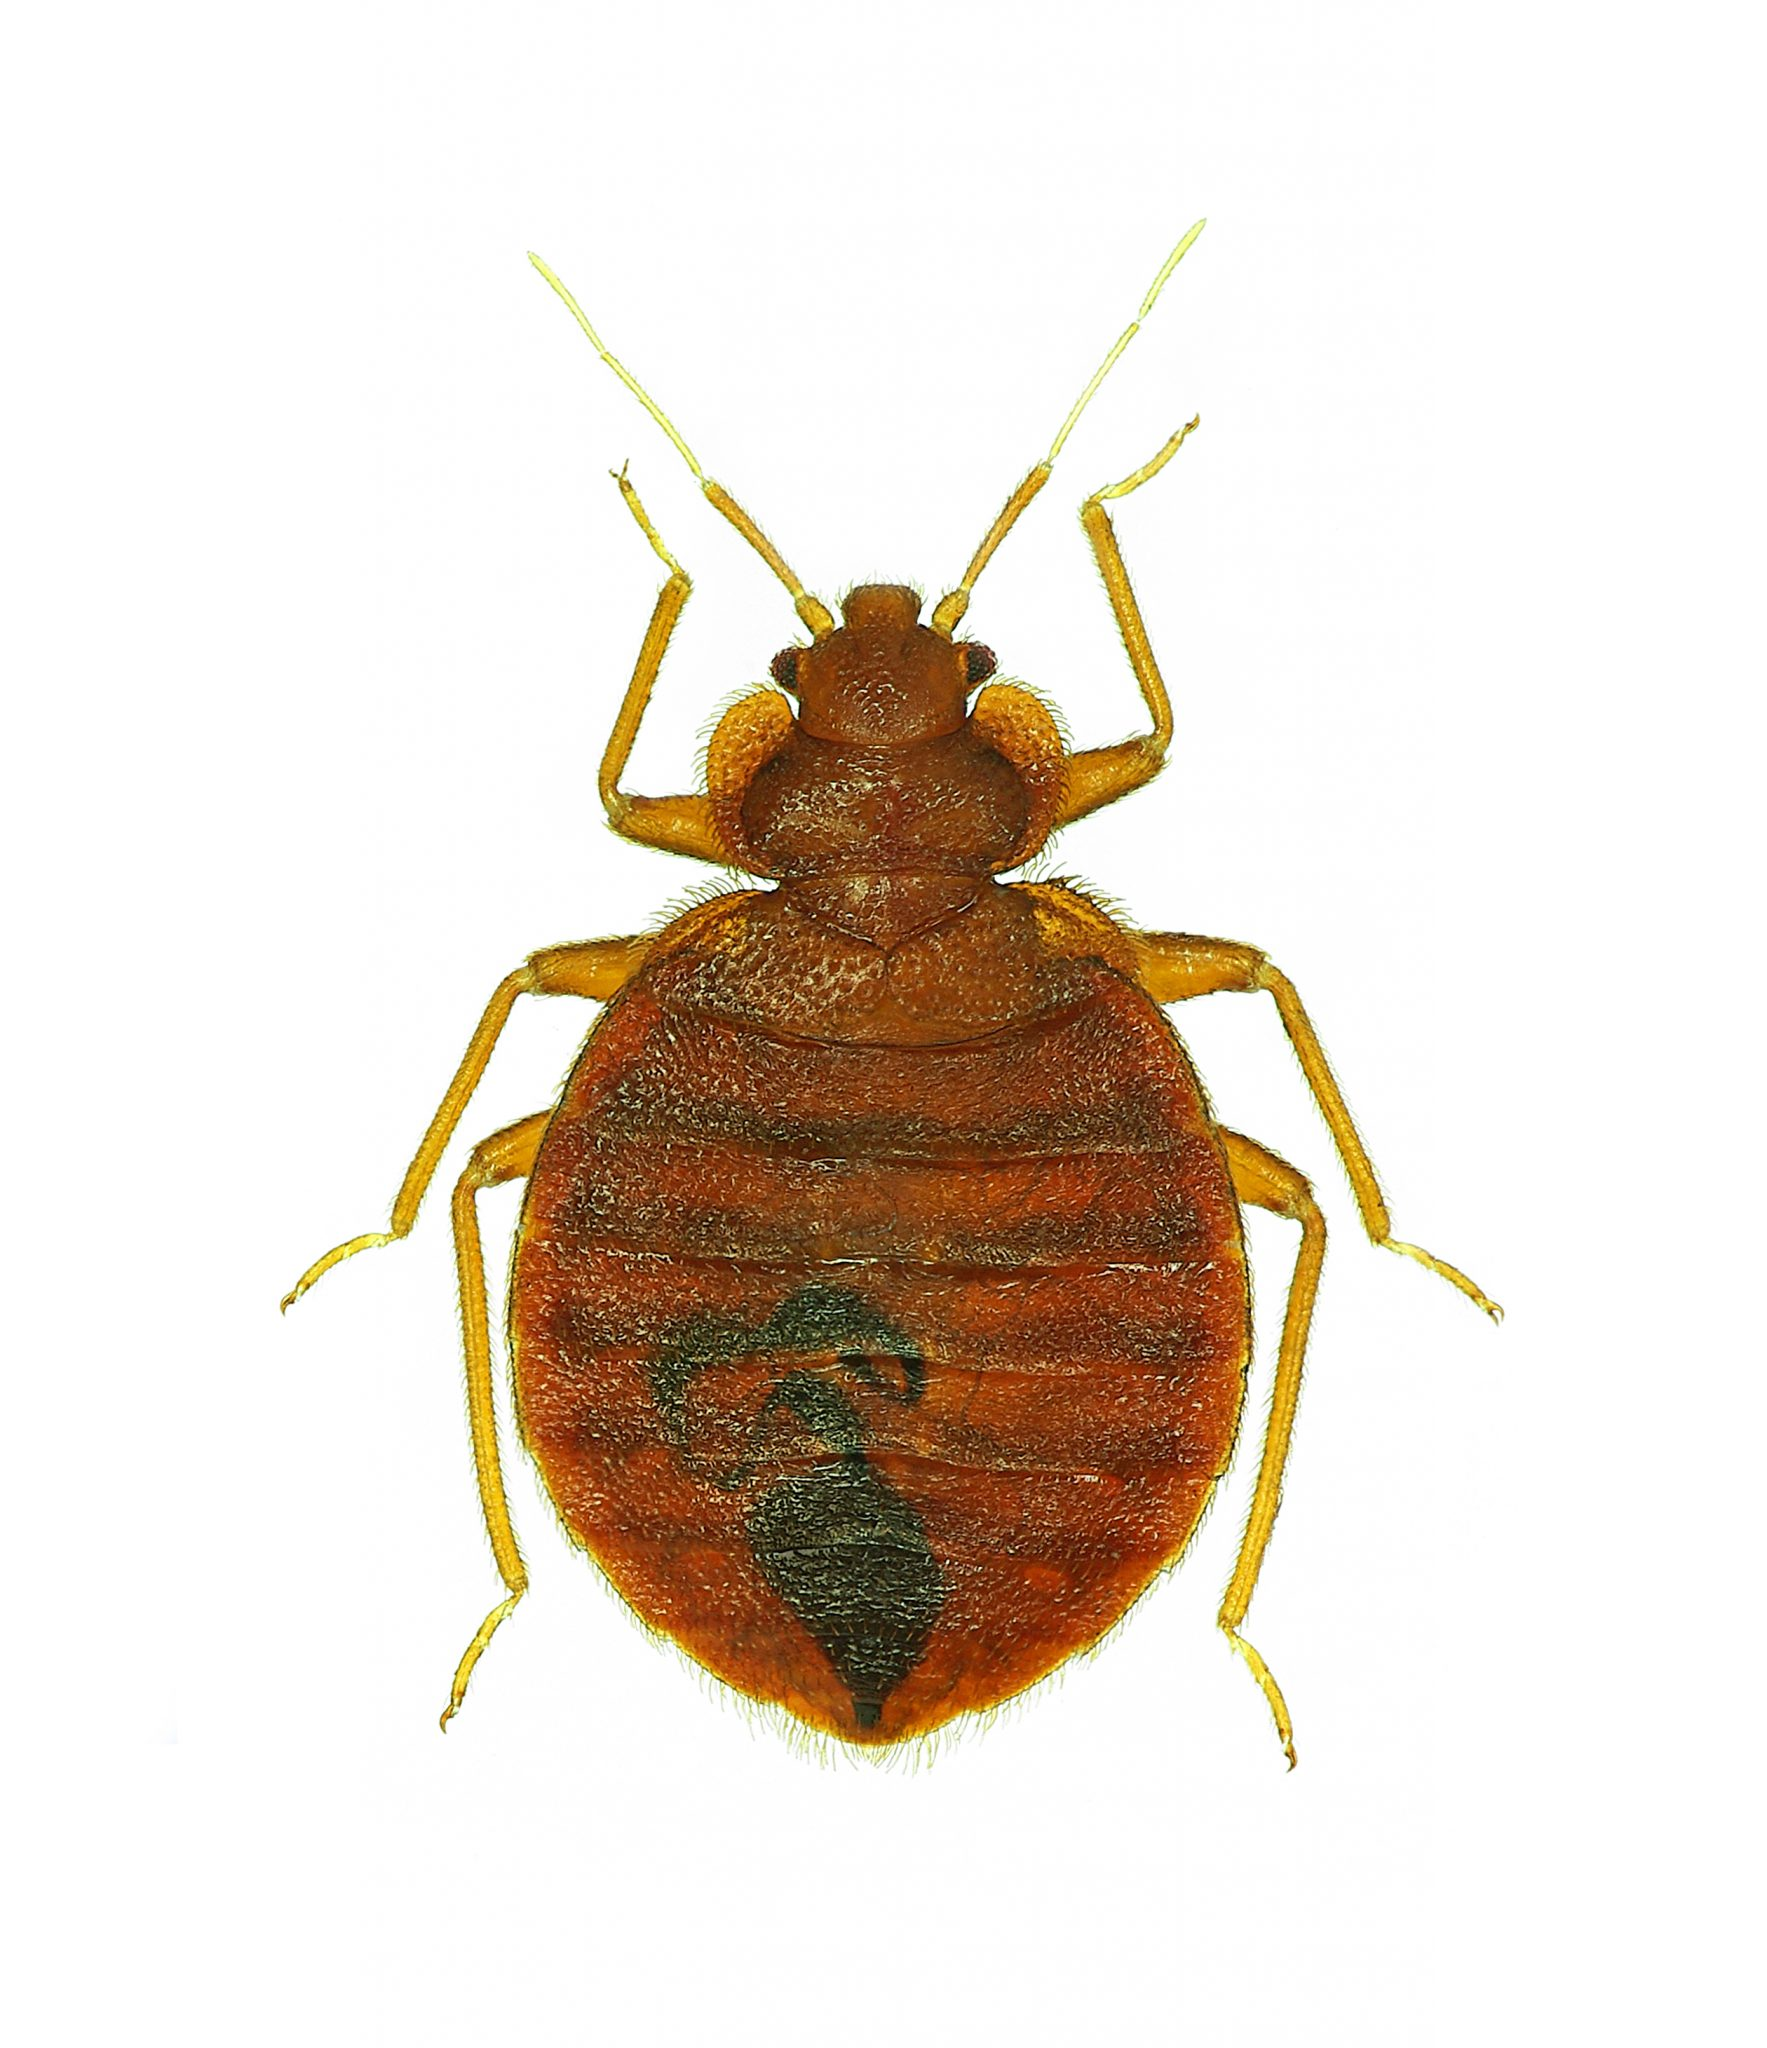 pictures of bed bugs - HD900×1043